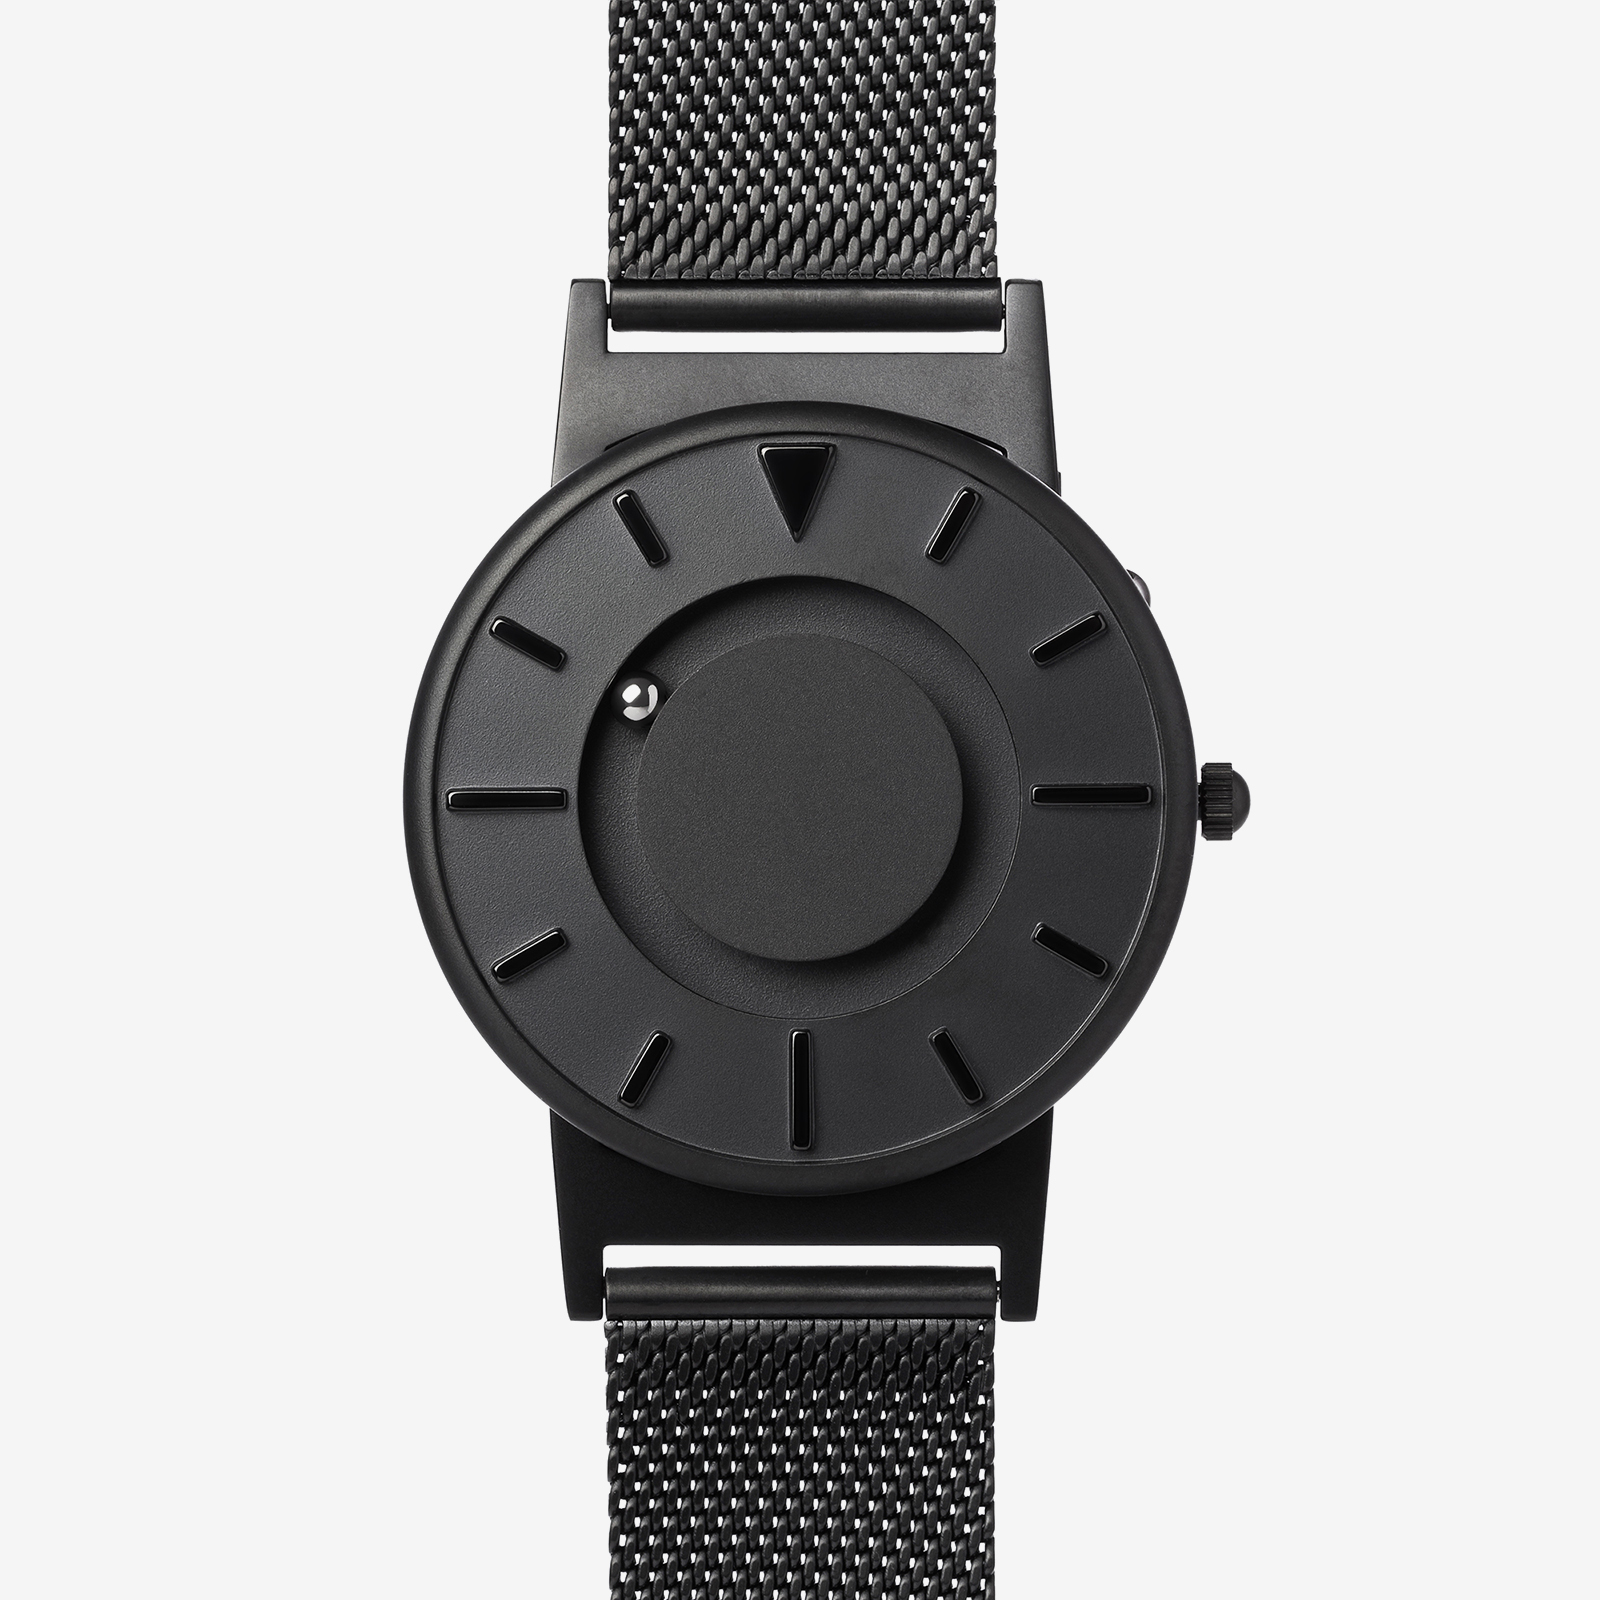 Black metal watch product image